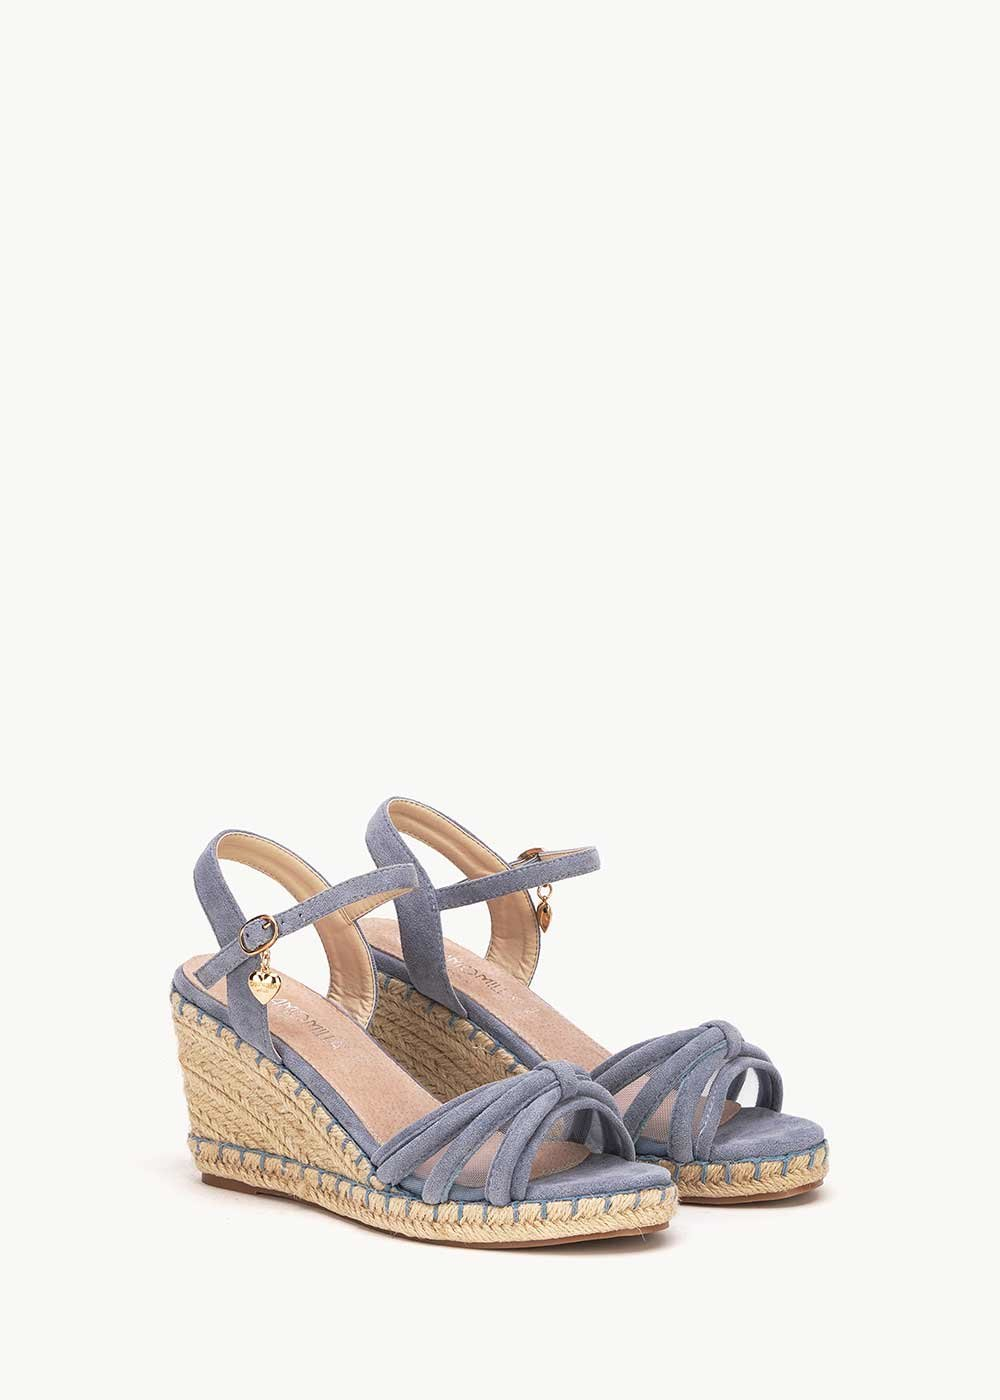 Syd sandal with straw wedge heel - Fog - Woman